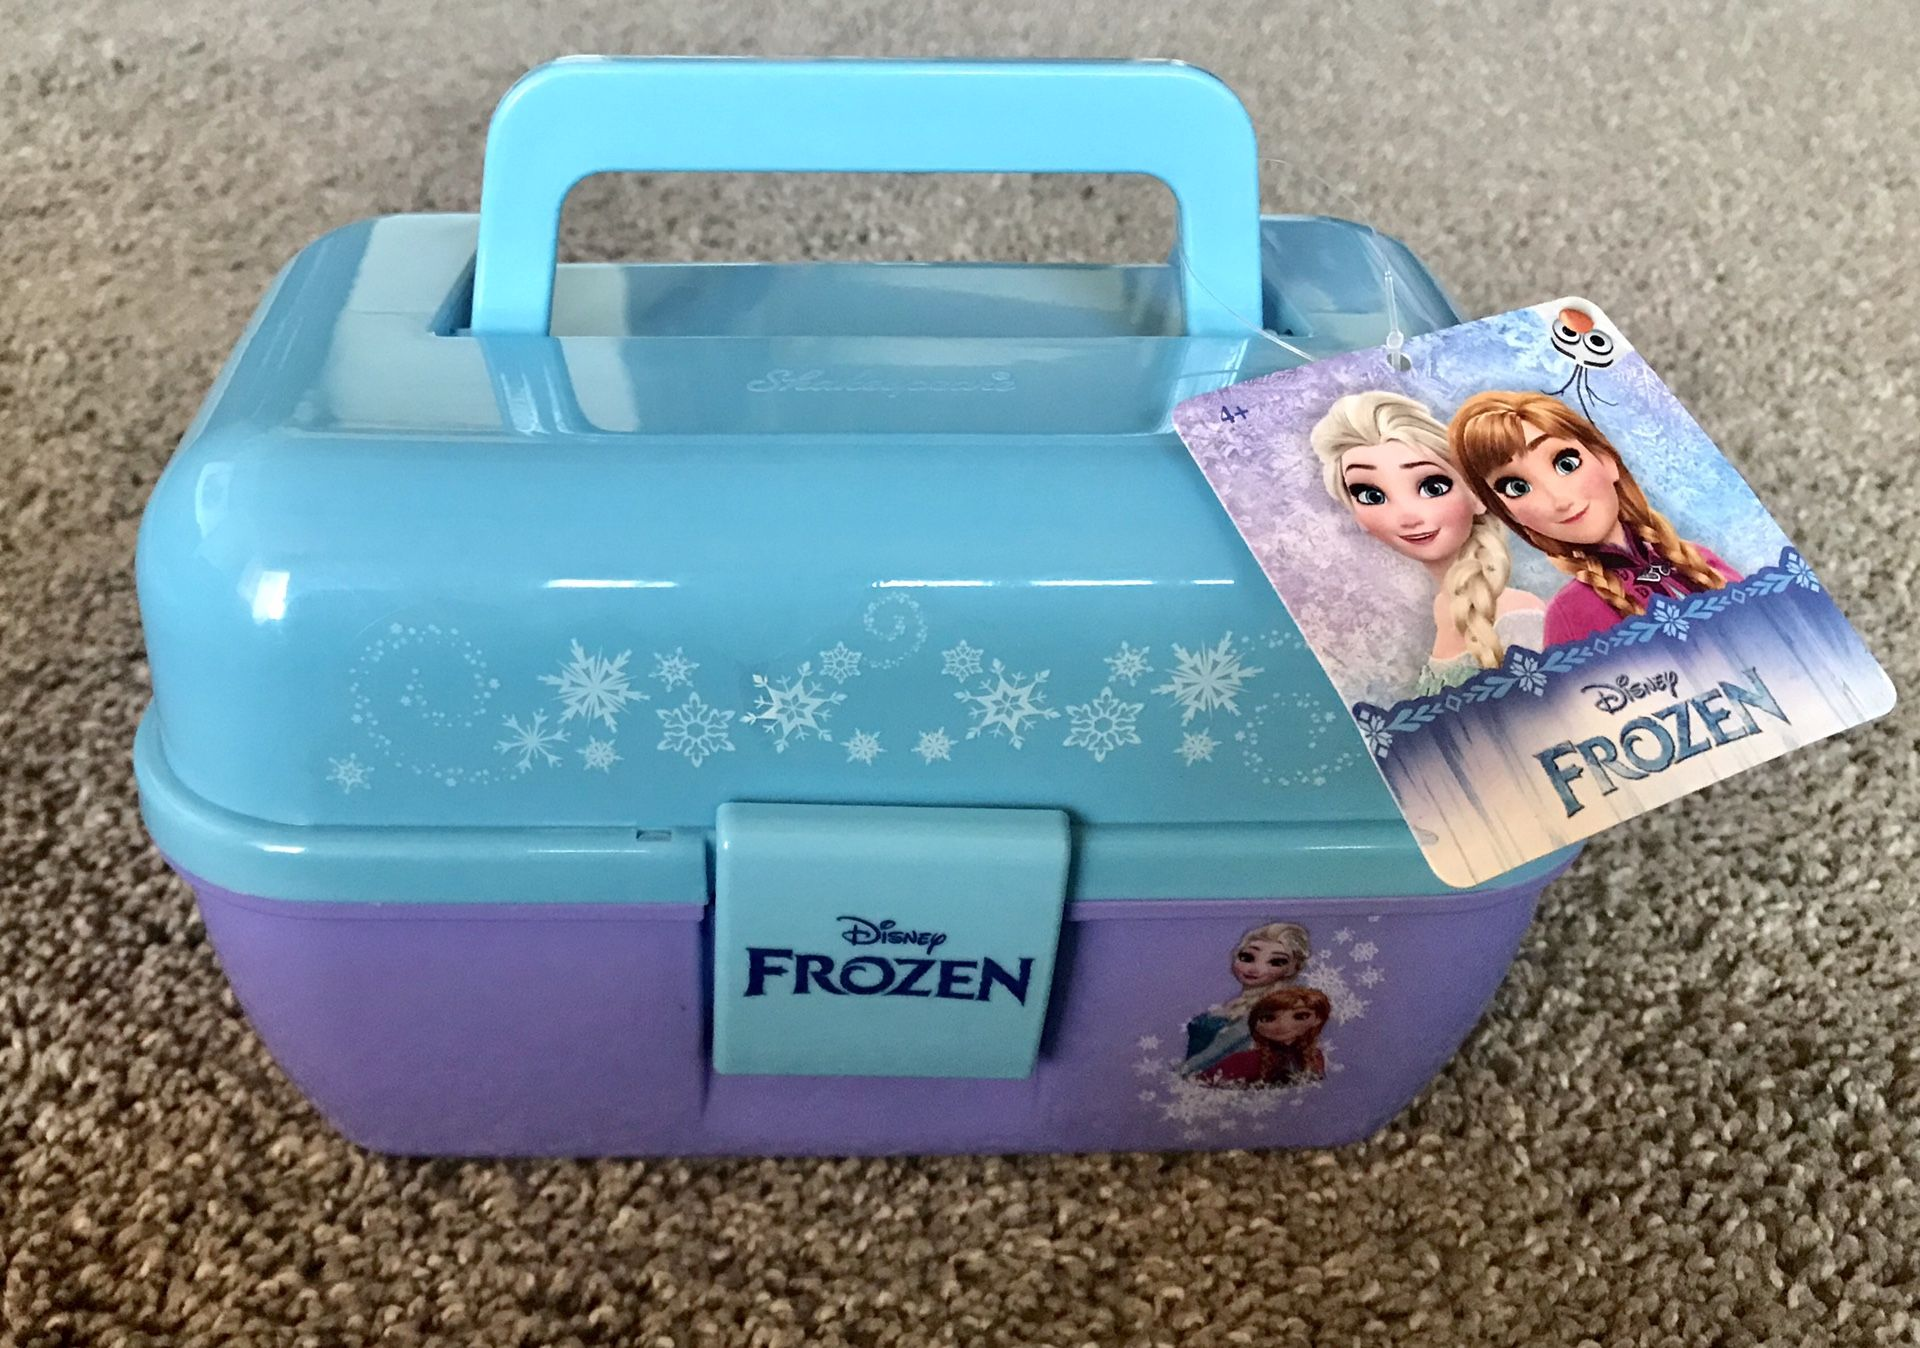 Disney Frozen Tackle Box Caboodle play box